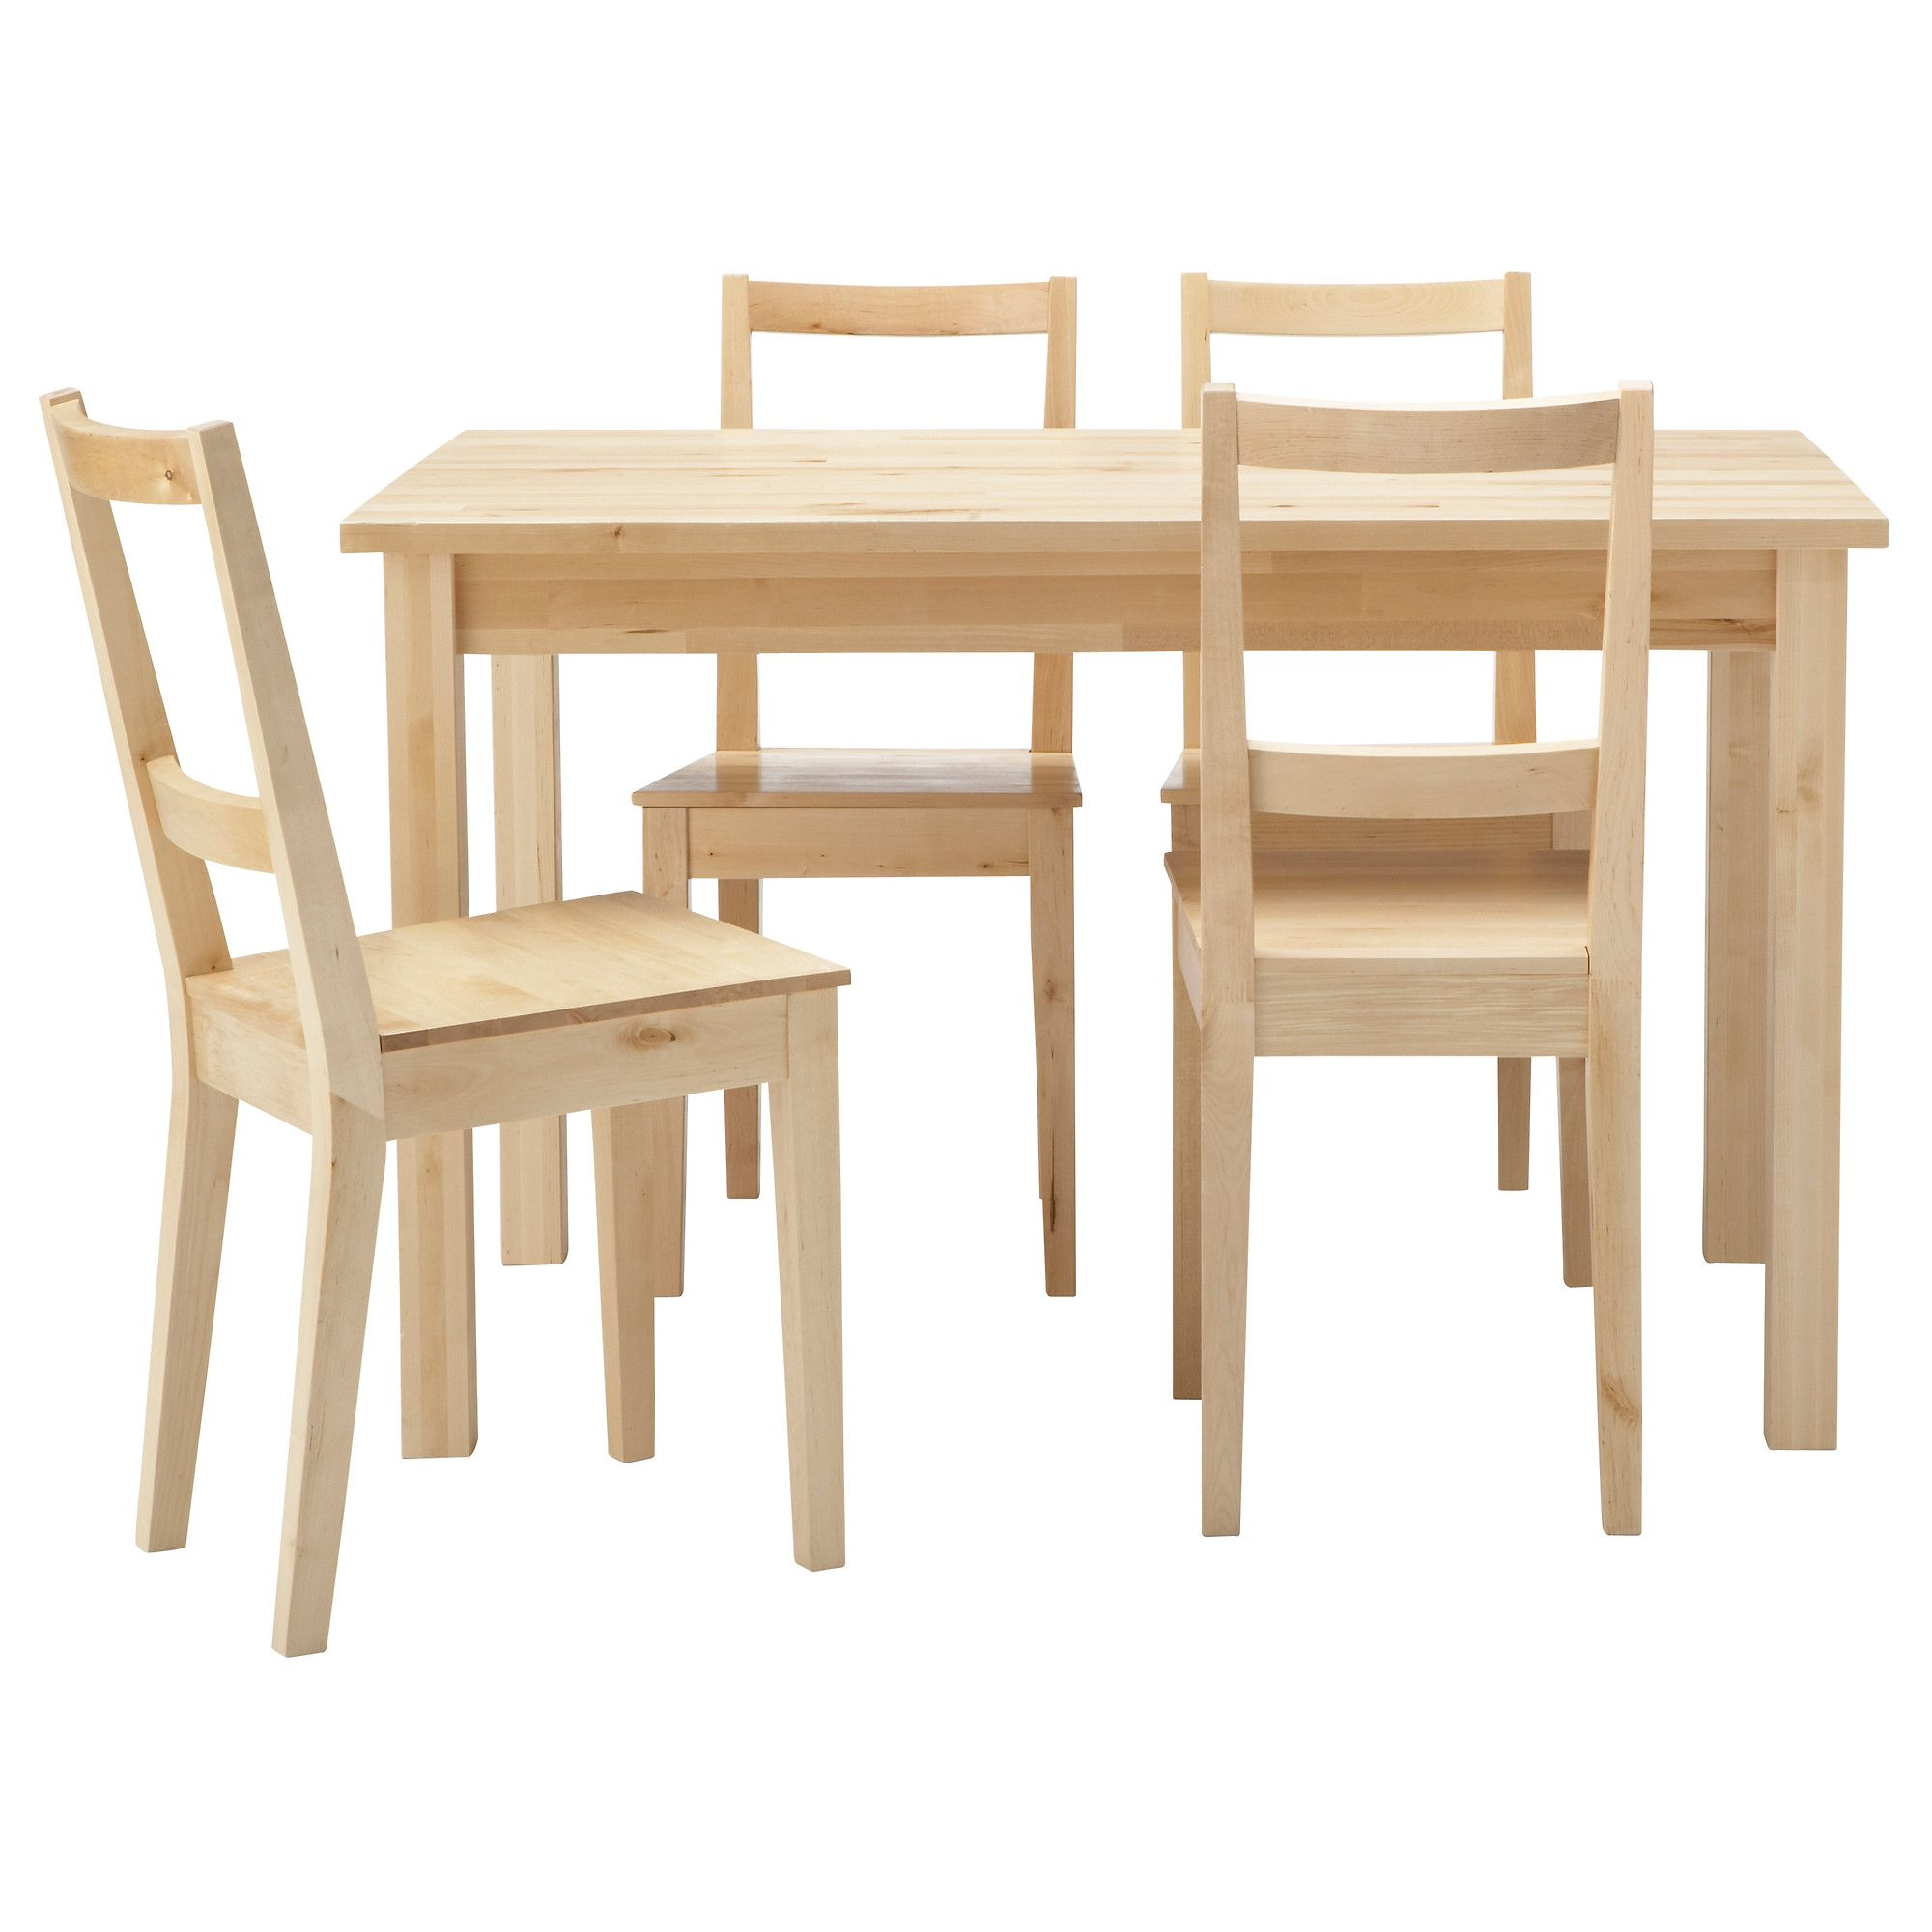 Dining room furniture appealing ikea dining sets with dining table and chairs furniture - Ikea wooden dining table chairs ...